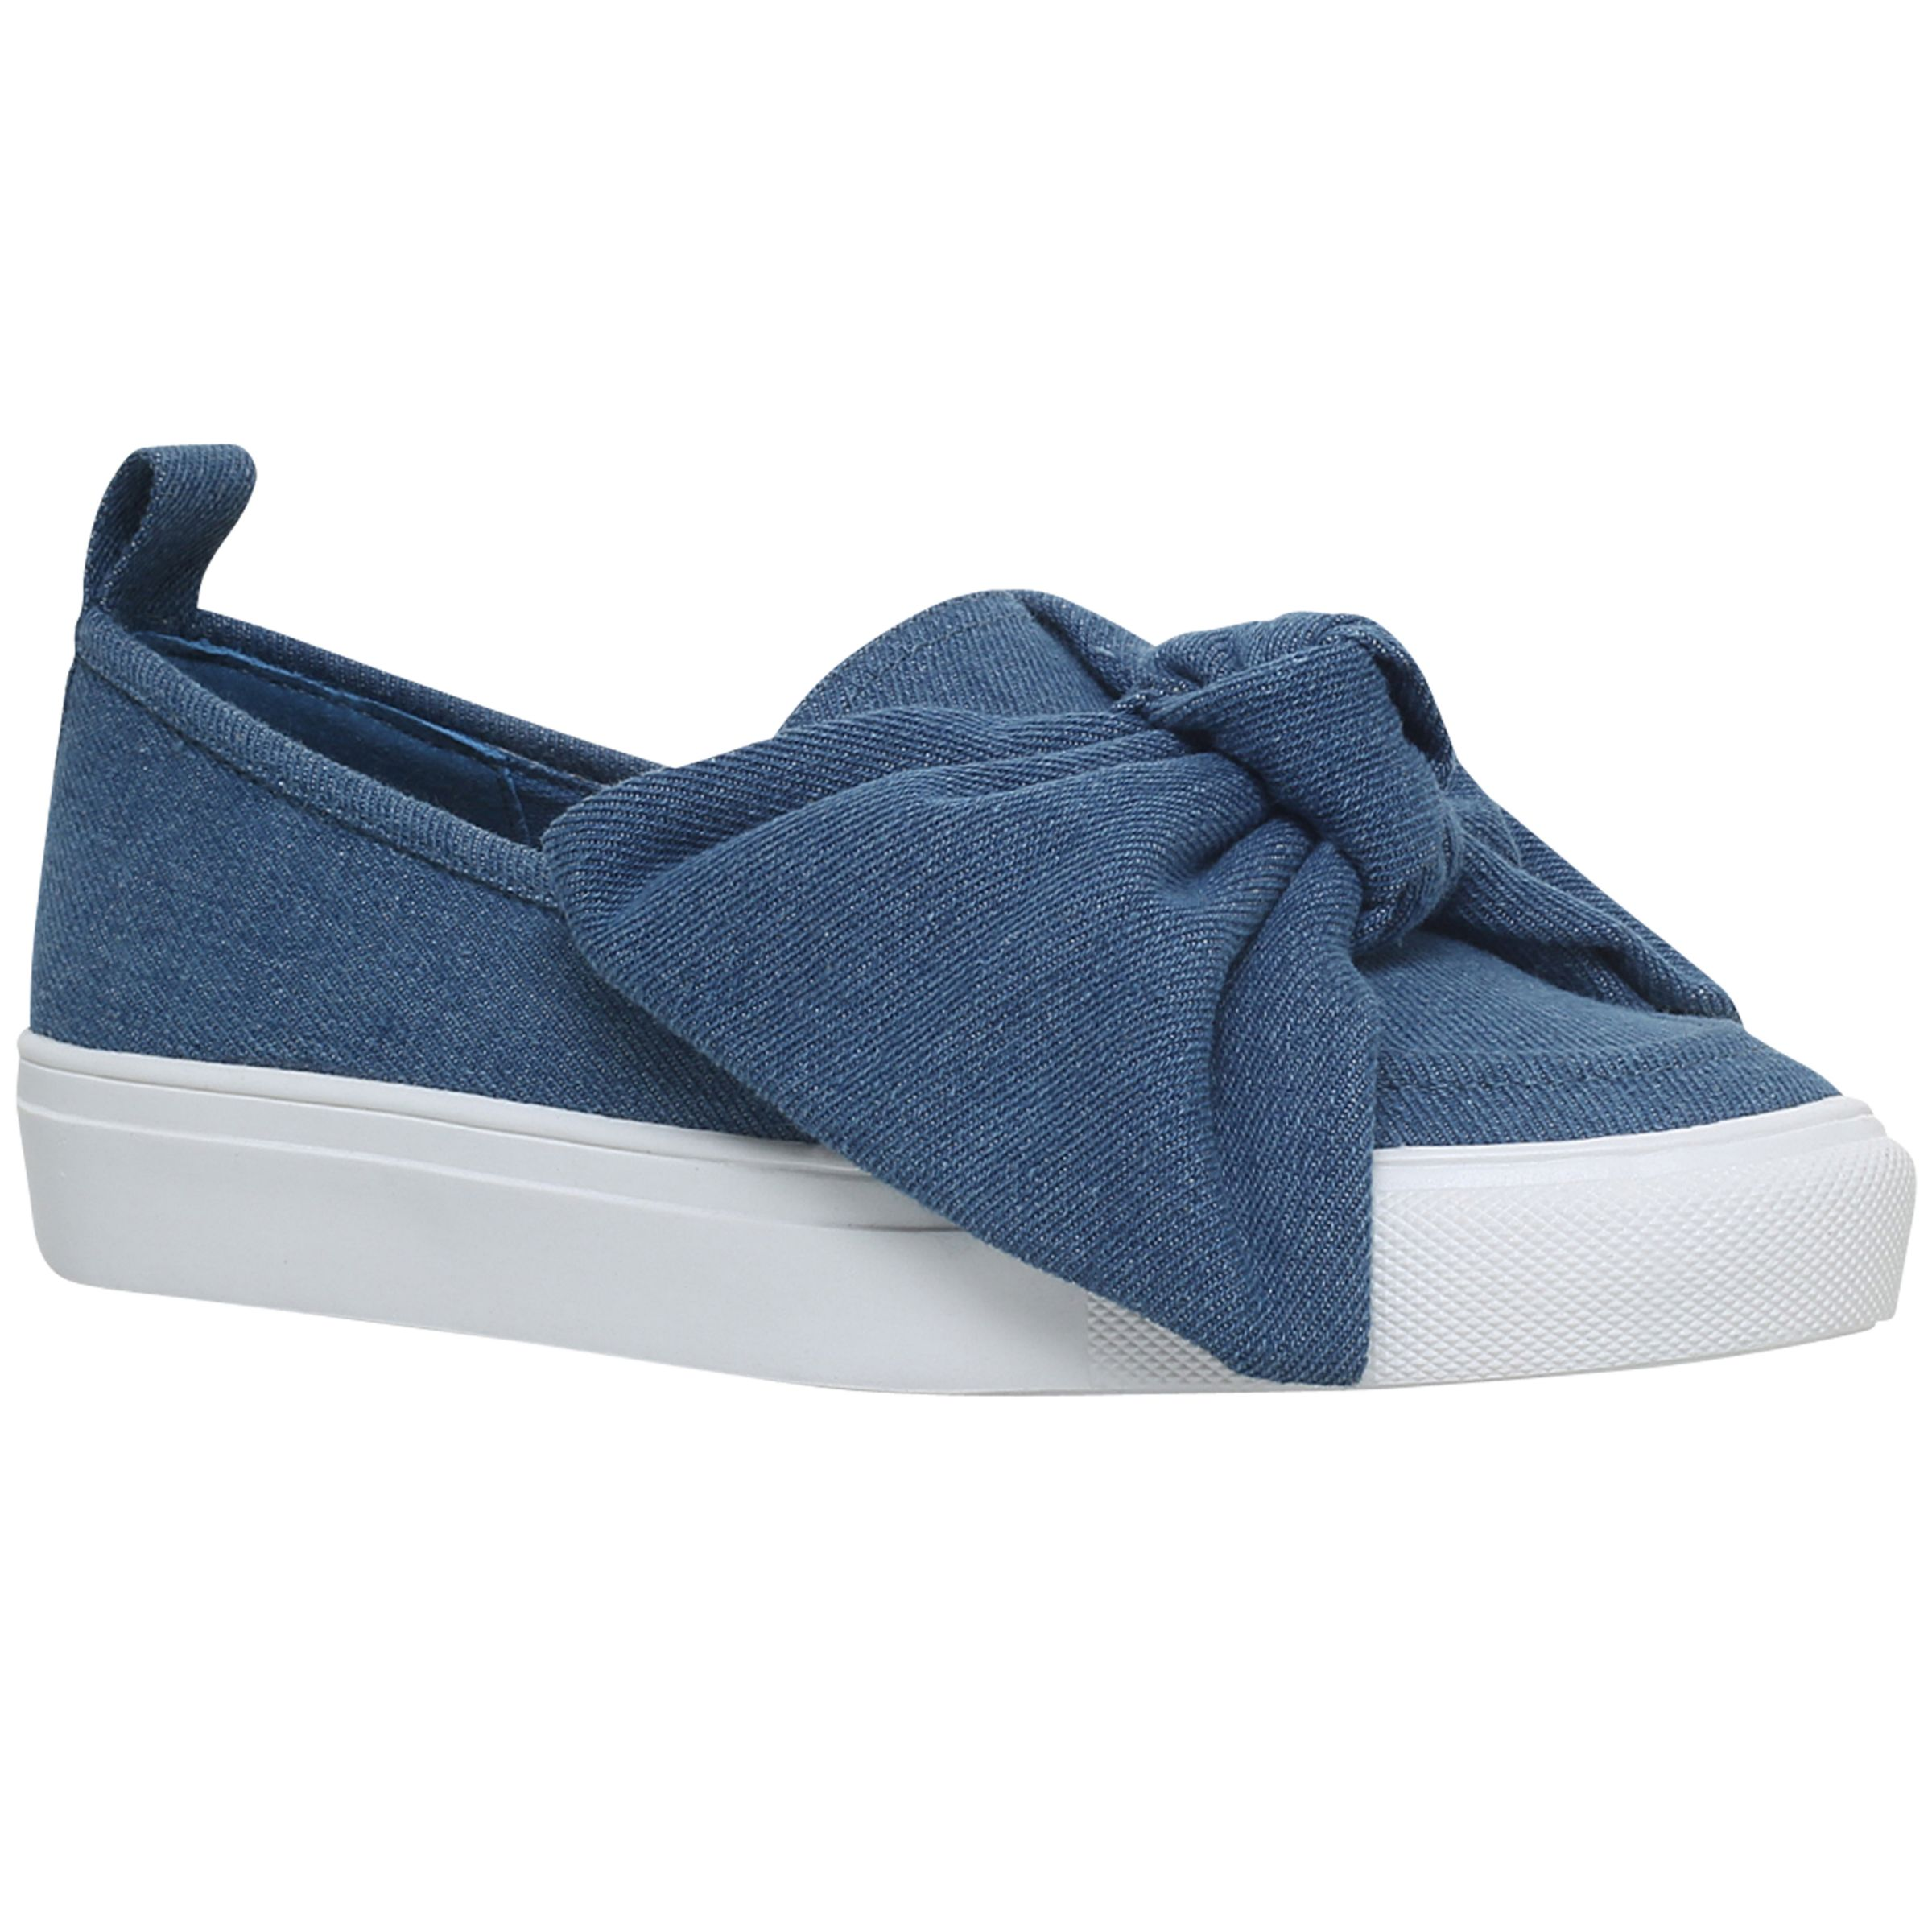 KG by Kurt Geiger KG by Kurt Geiger Lust Bow Slip On Trainers, Blue